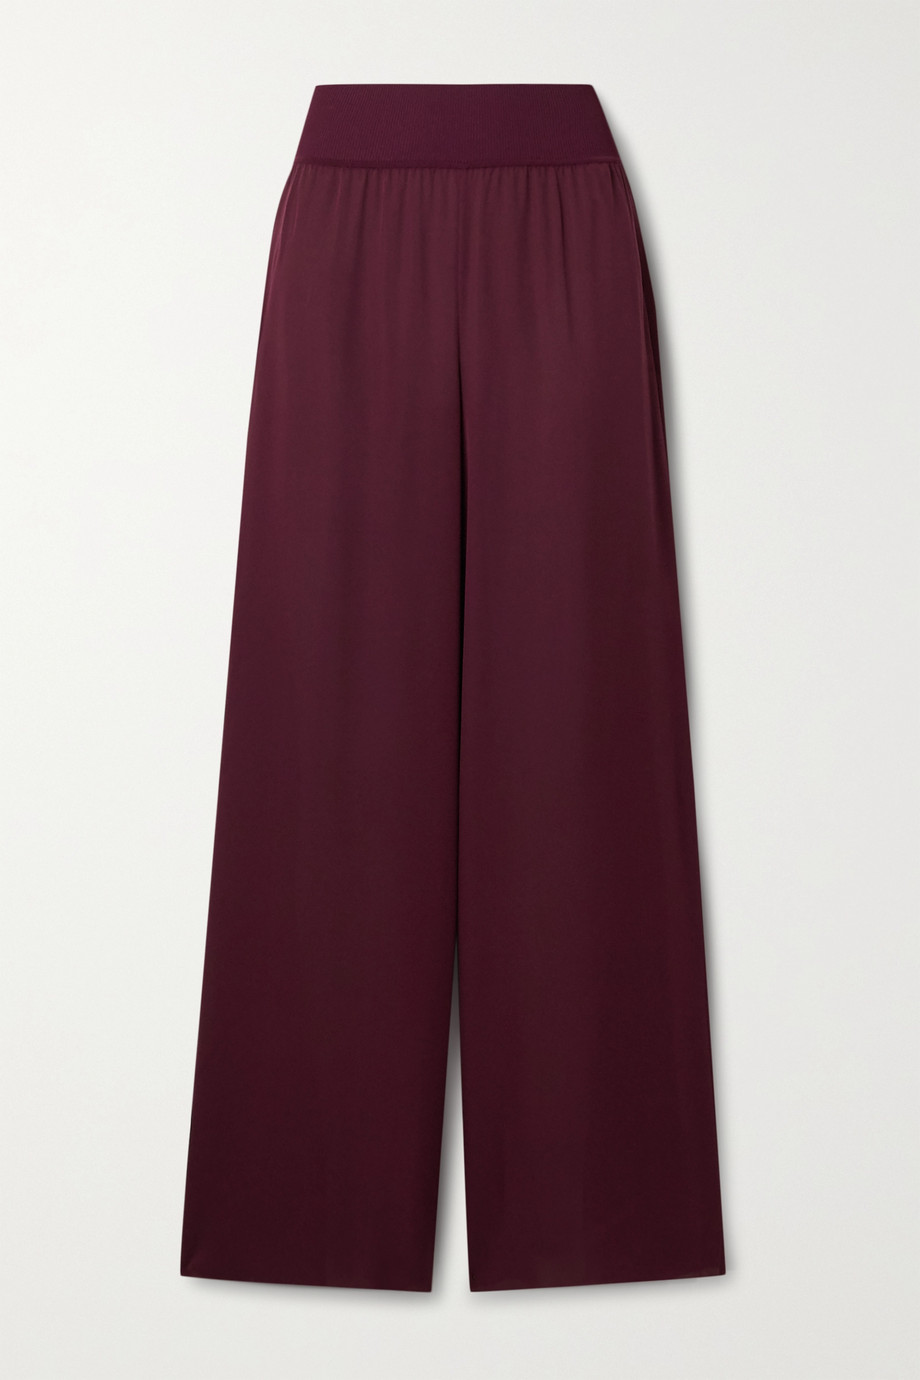 Theory Silk crepe de chine wide-leg pants